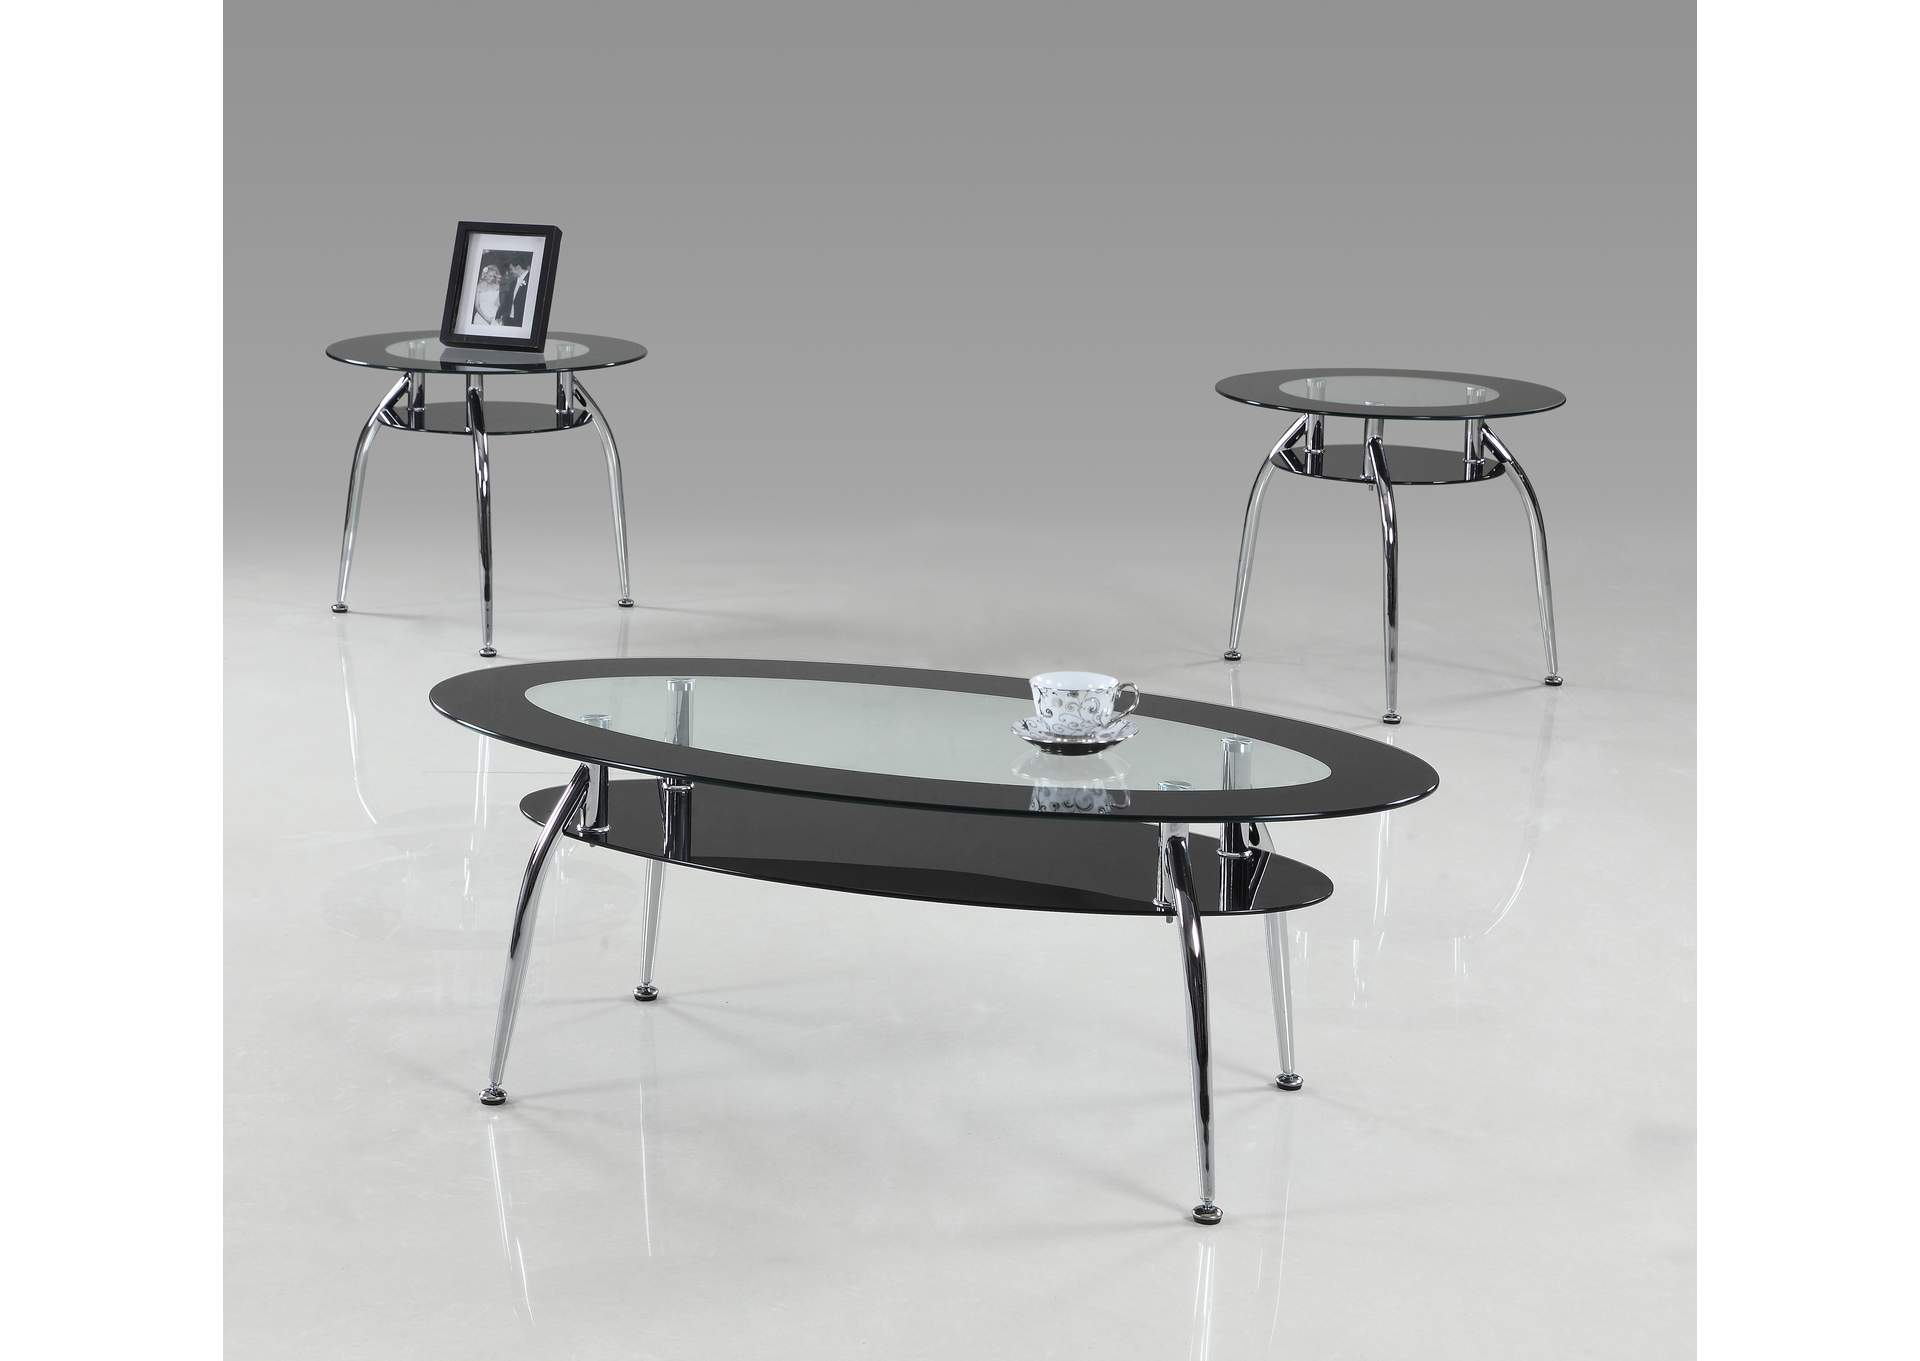 Mila Black Glass Top Cocktail Table 3 Pack,Crown Mark